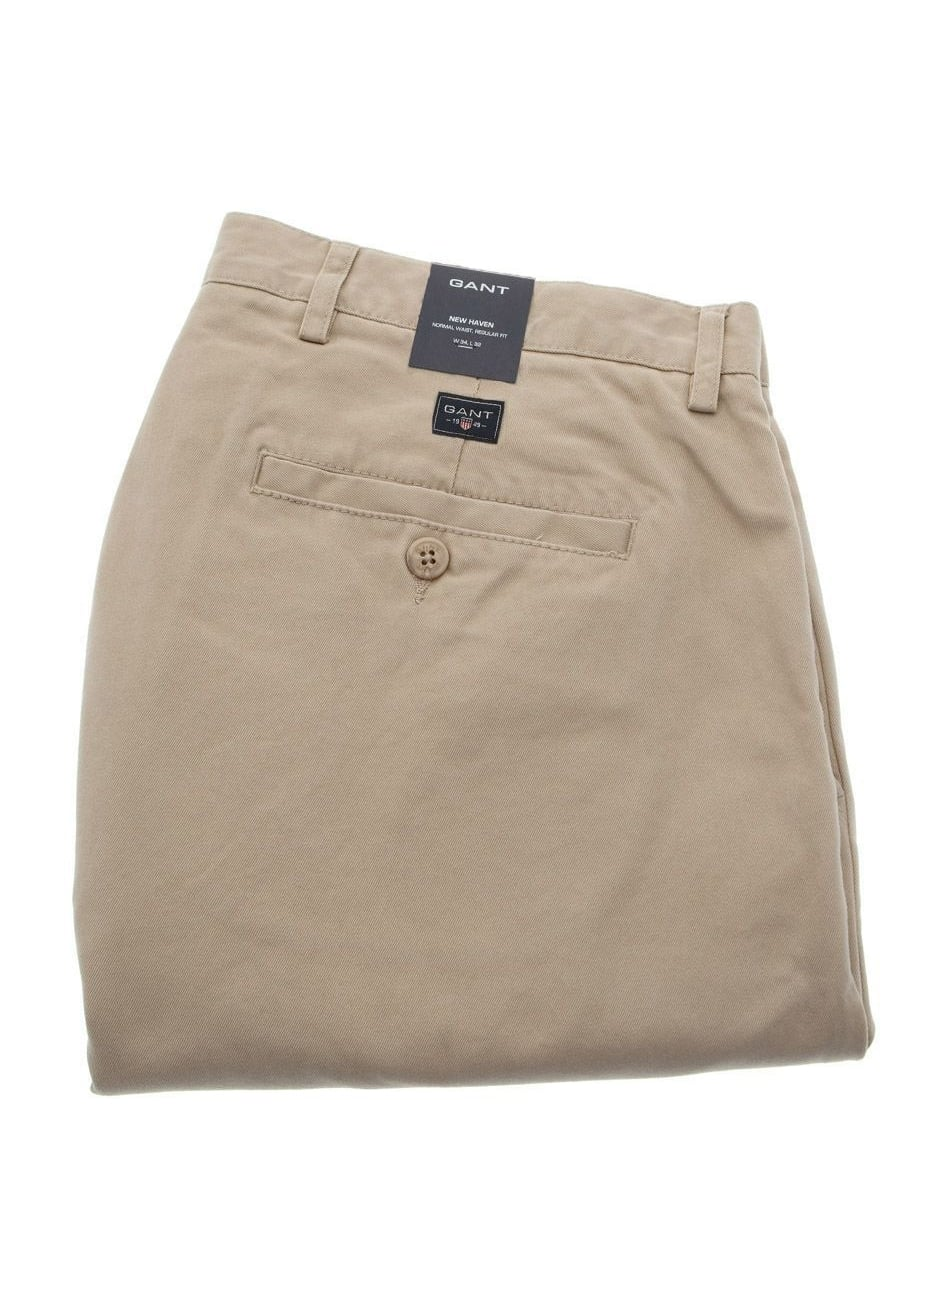 Gant New Haven Chino Trousers Large Image